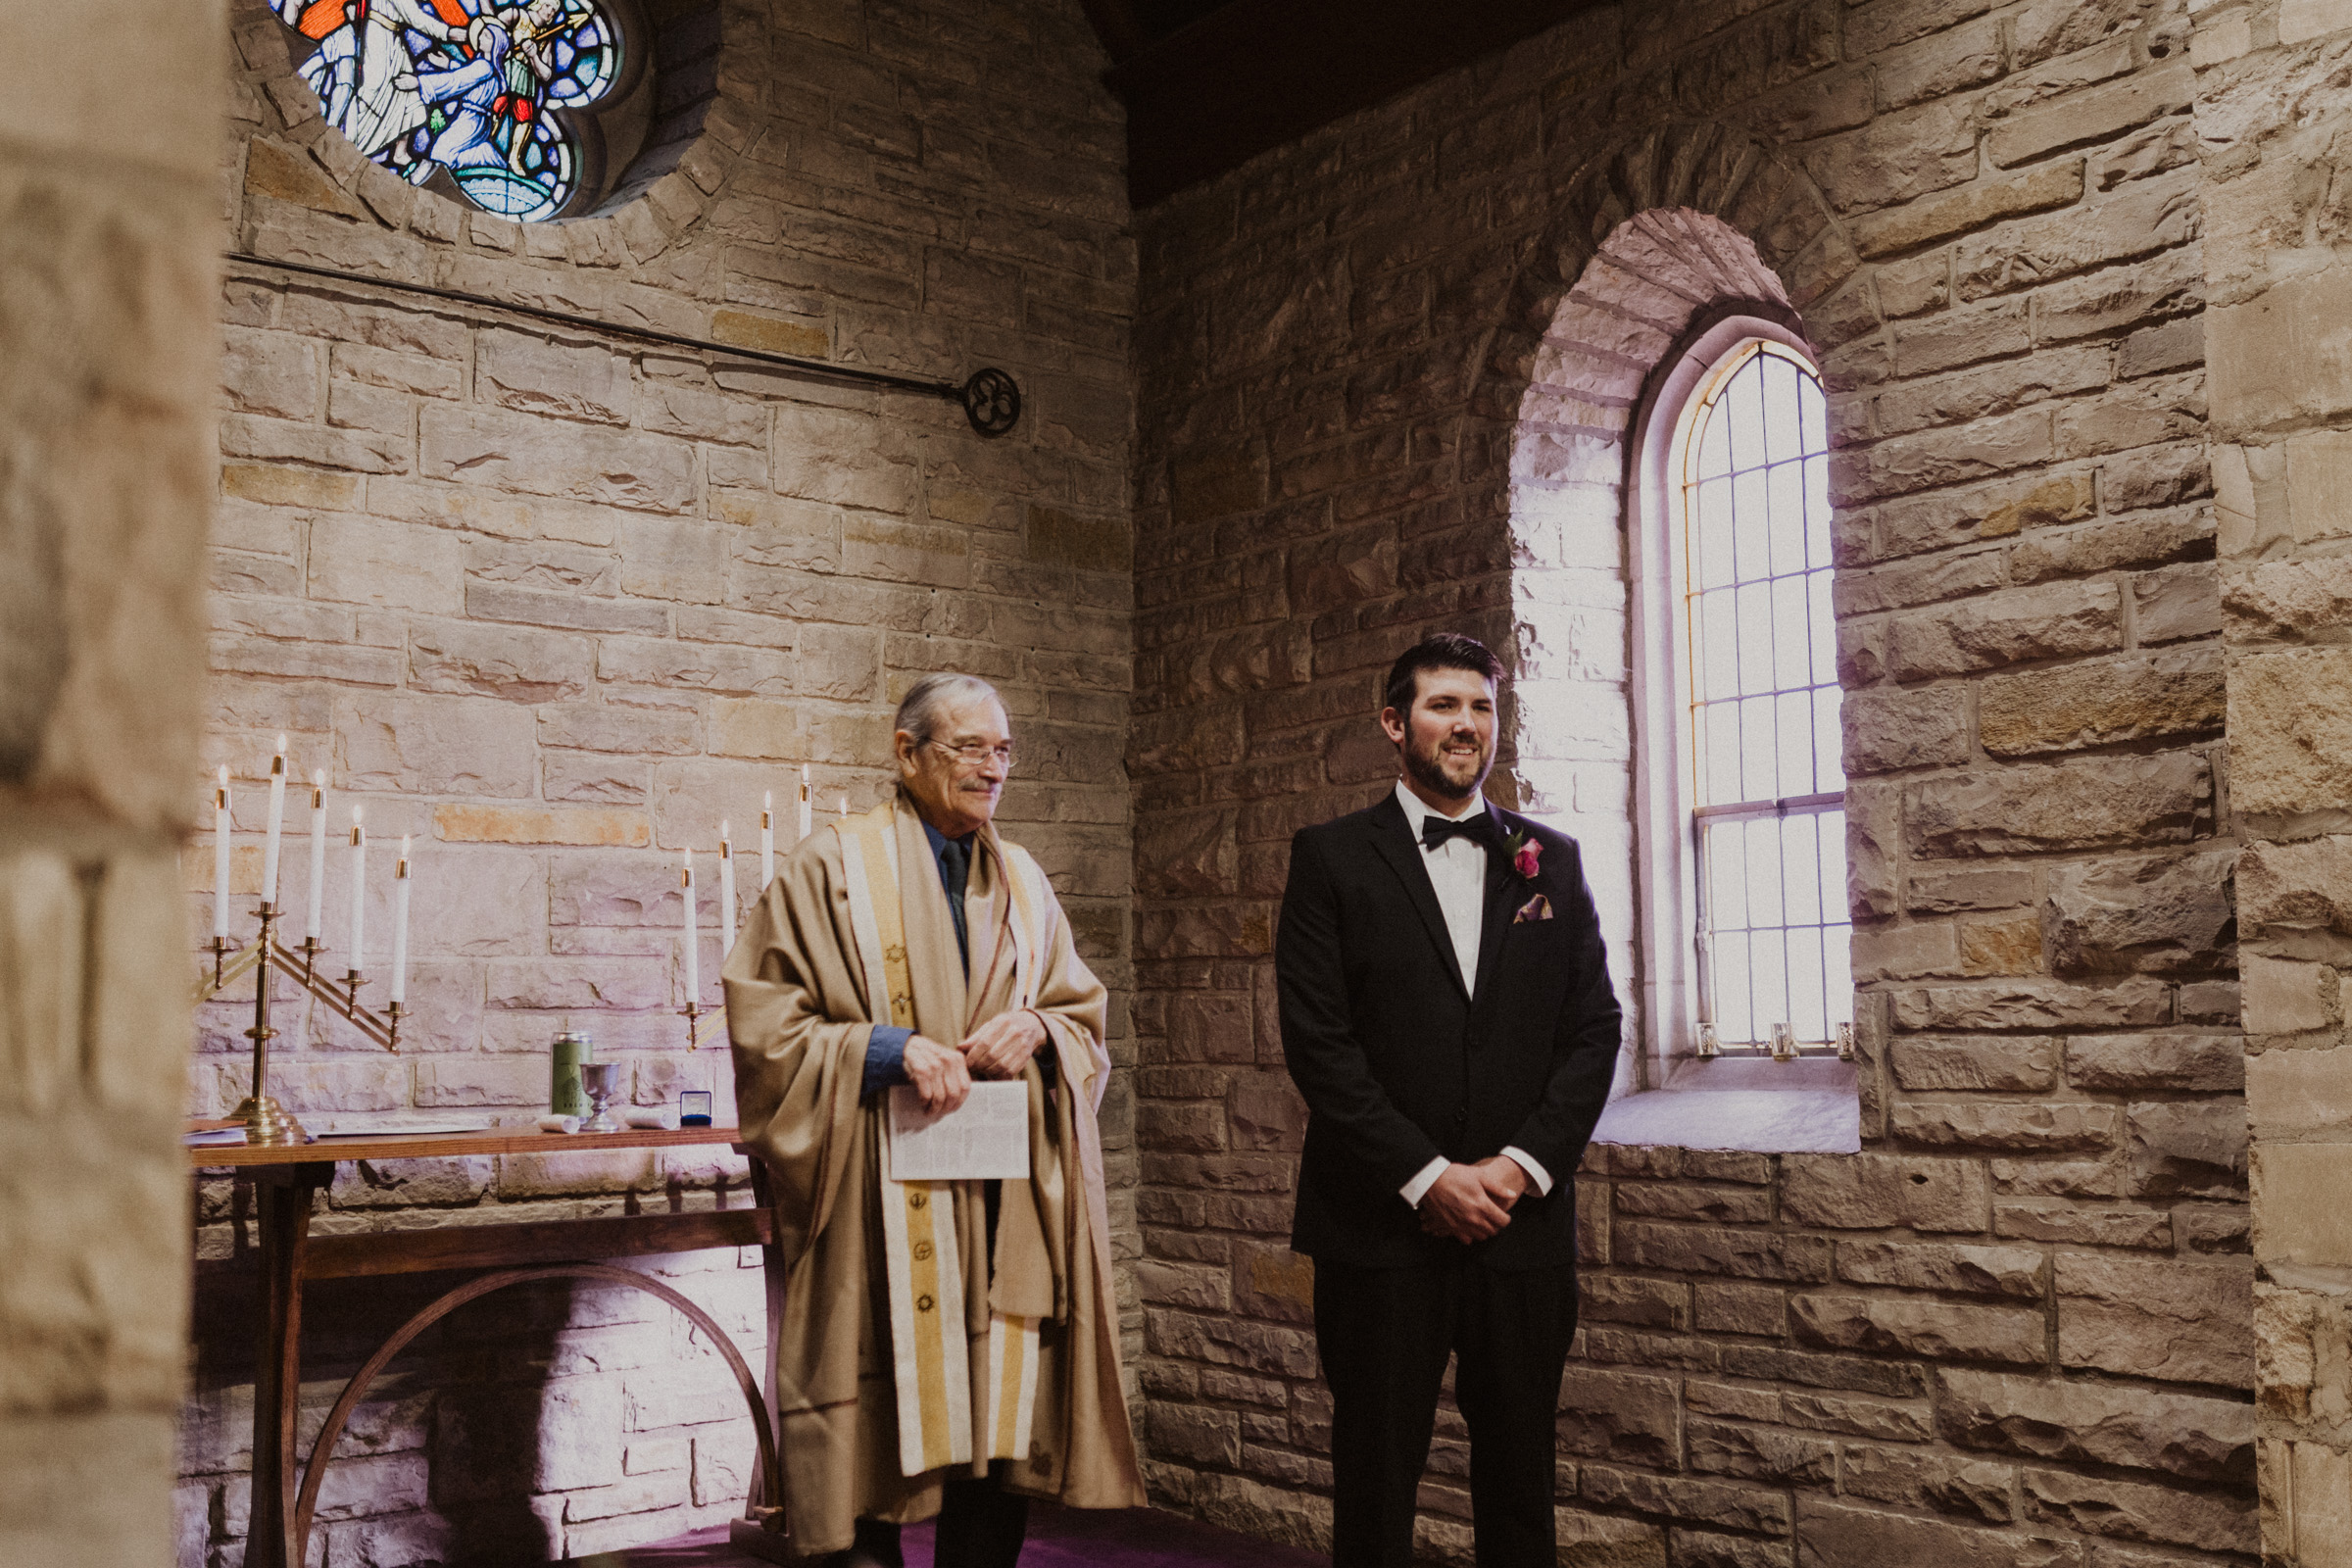 alyssa barletter photography nelson atkins museum intimate romantic spring wedding pilgrim chapel kcmo-7.jpg